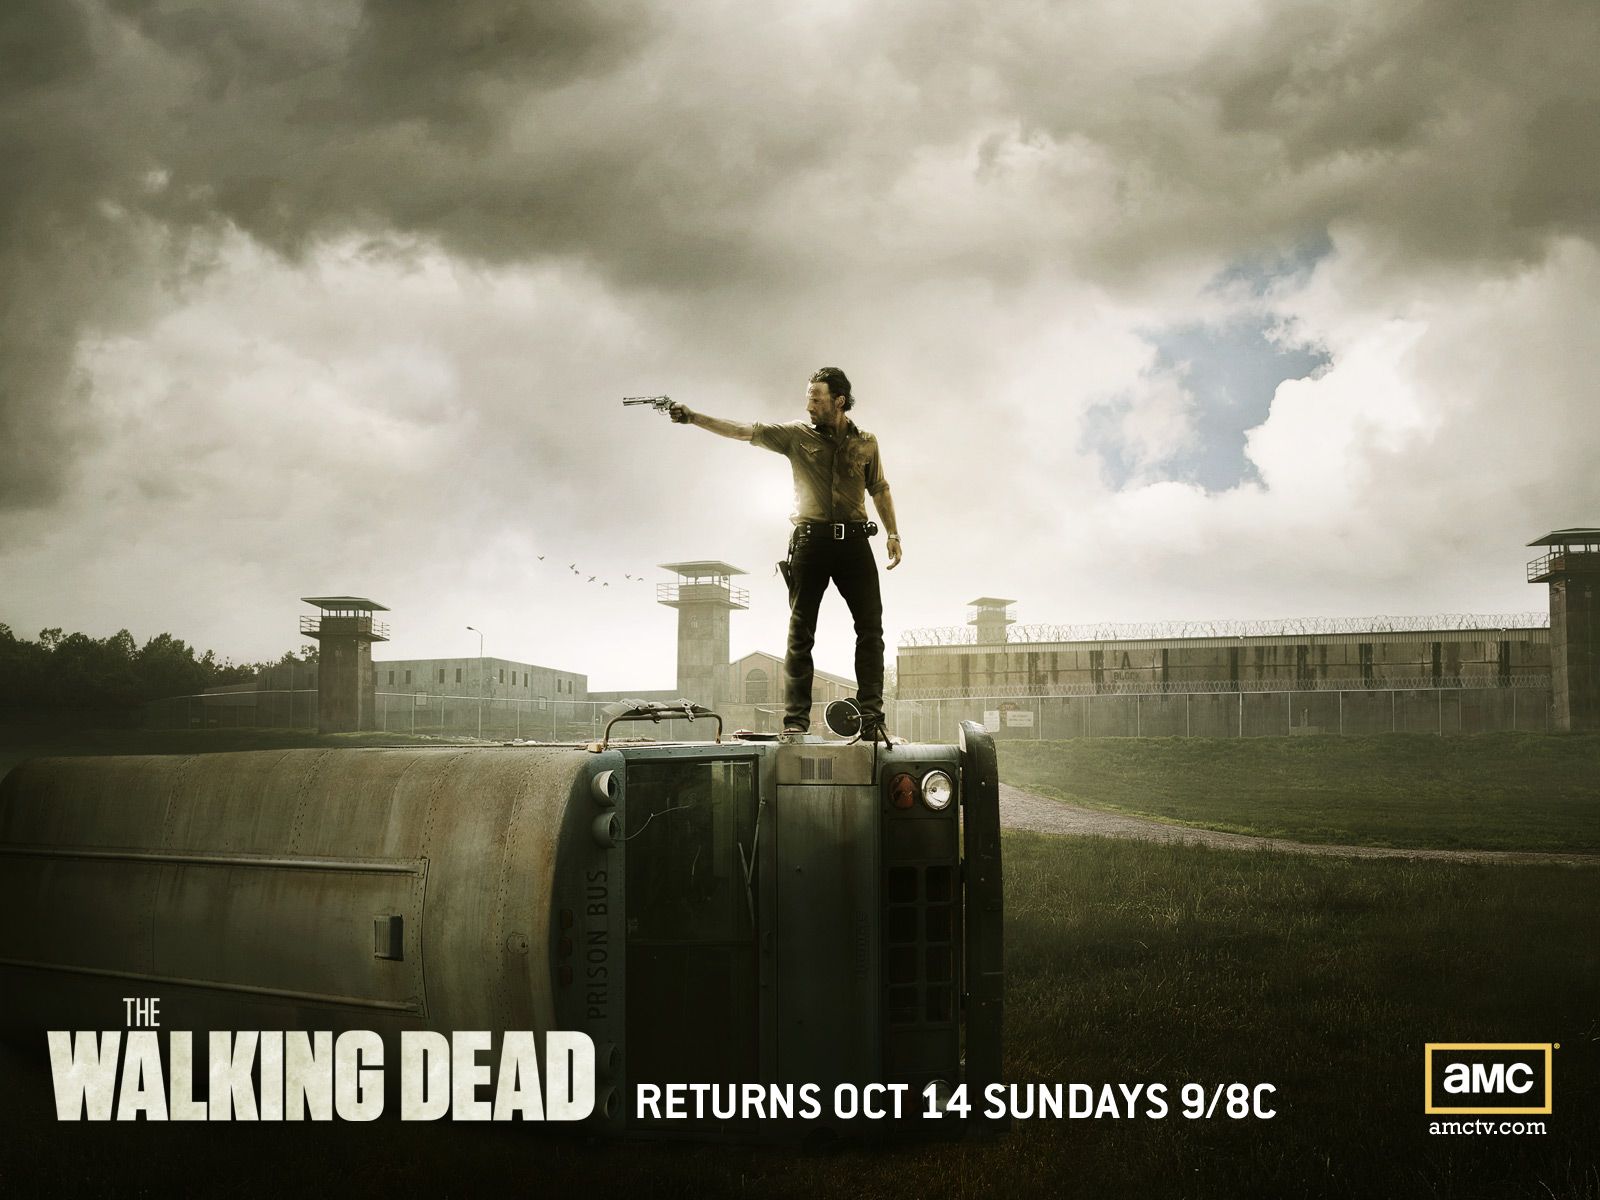 http://1.bp.blogspot.com/-wvGlpXWW_rA/UHJCUKvC-9I/AAAAAAAABa4/tFYTqMzWexE/s1600/The-Walking-Dead-the-walking-dead-32297721-1600-1200.jpg